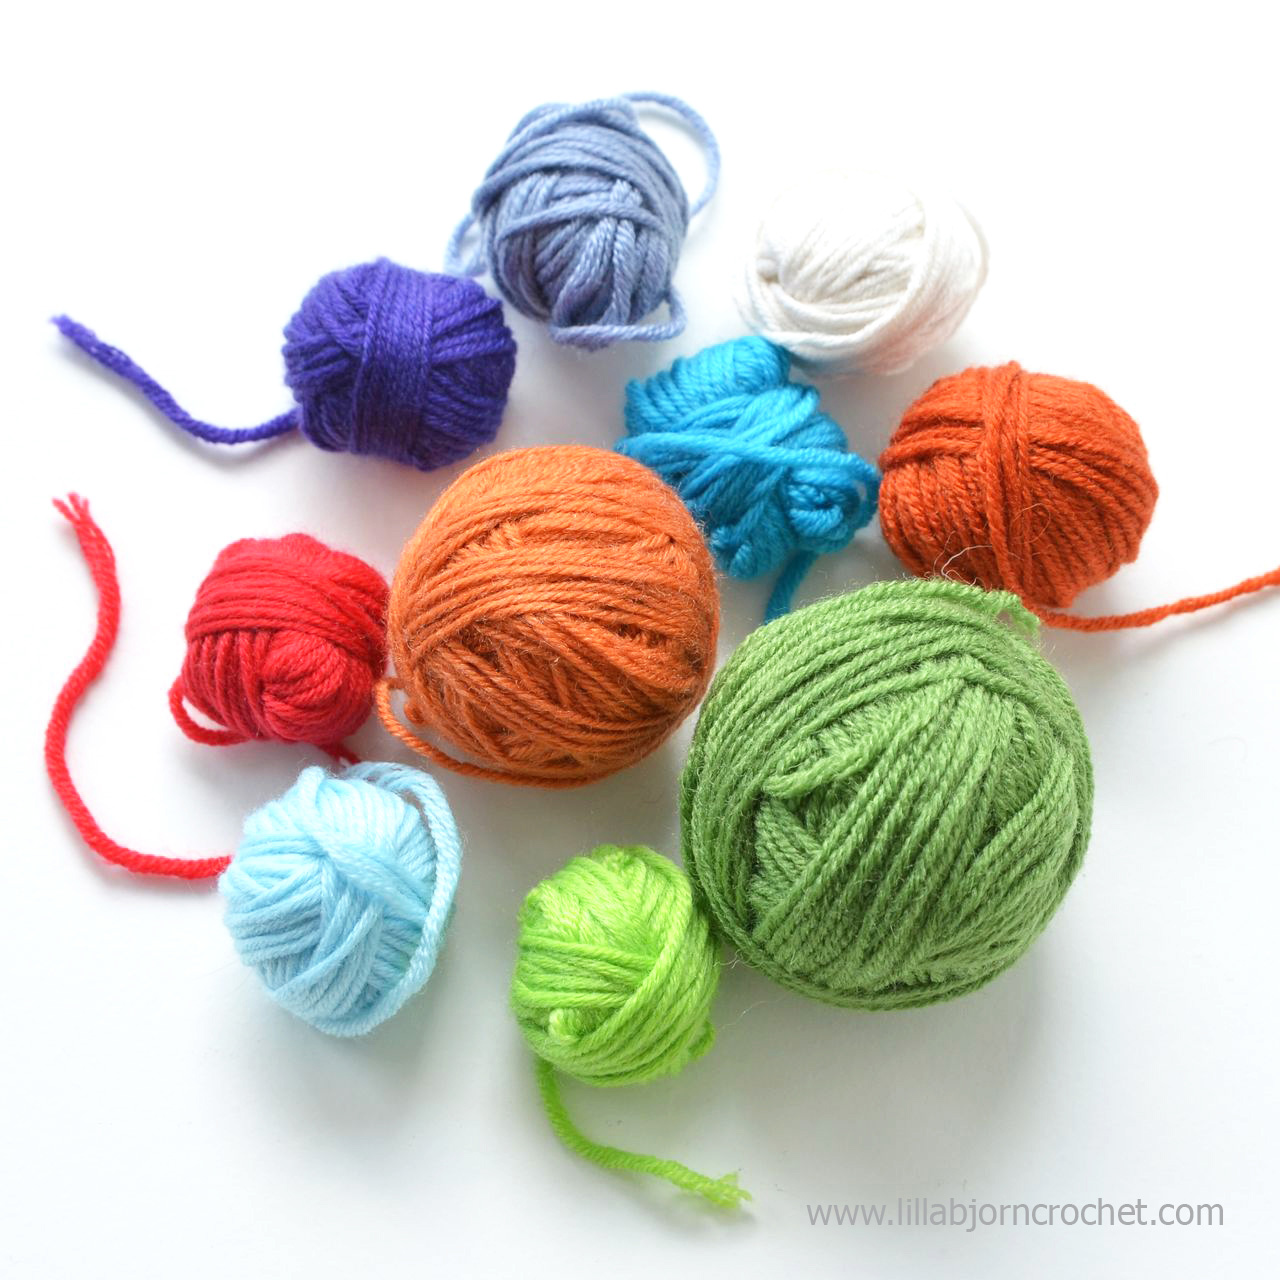 Colorful yarn balls